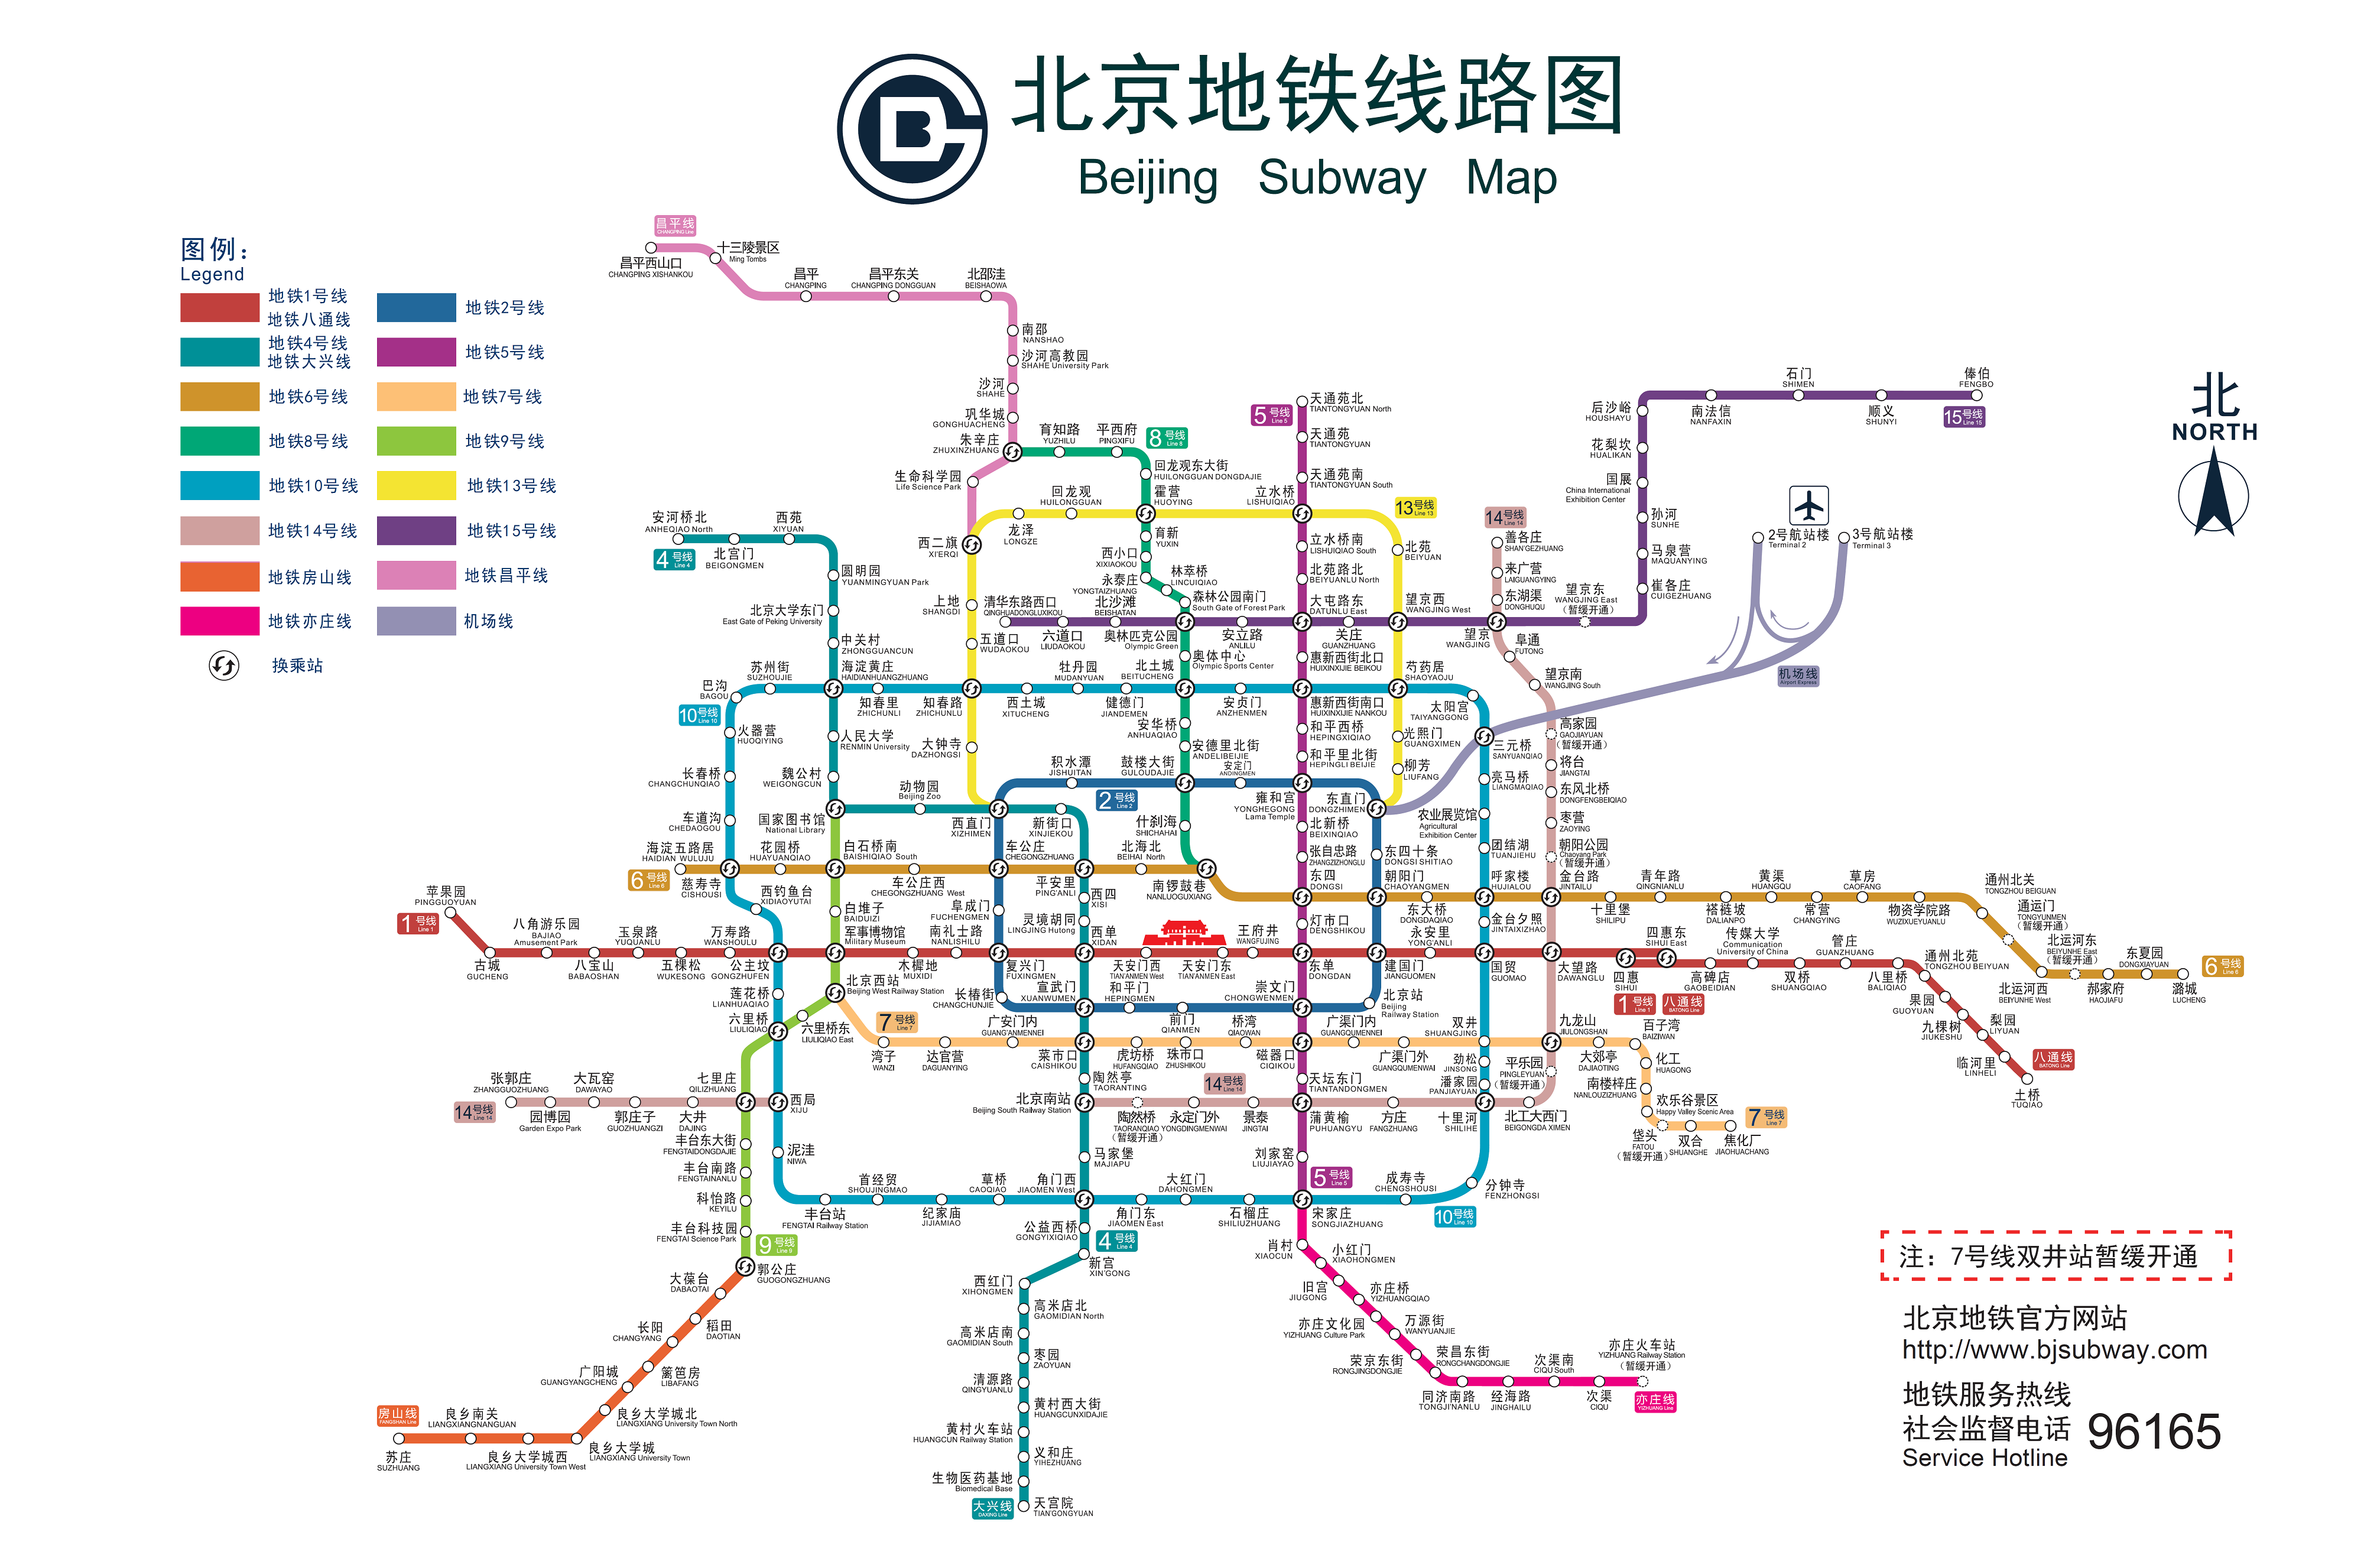 Beijing Subway Map 2017 Legend.Subway Update Line 14 Expands To Beijing South Railway Off Peak